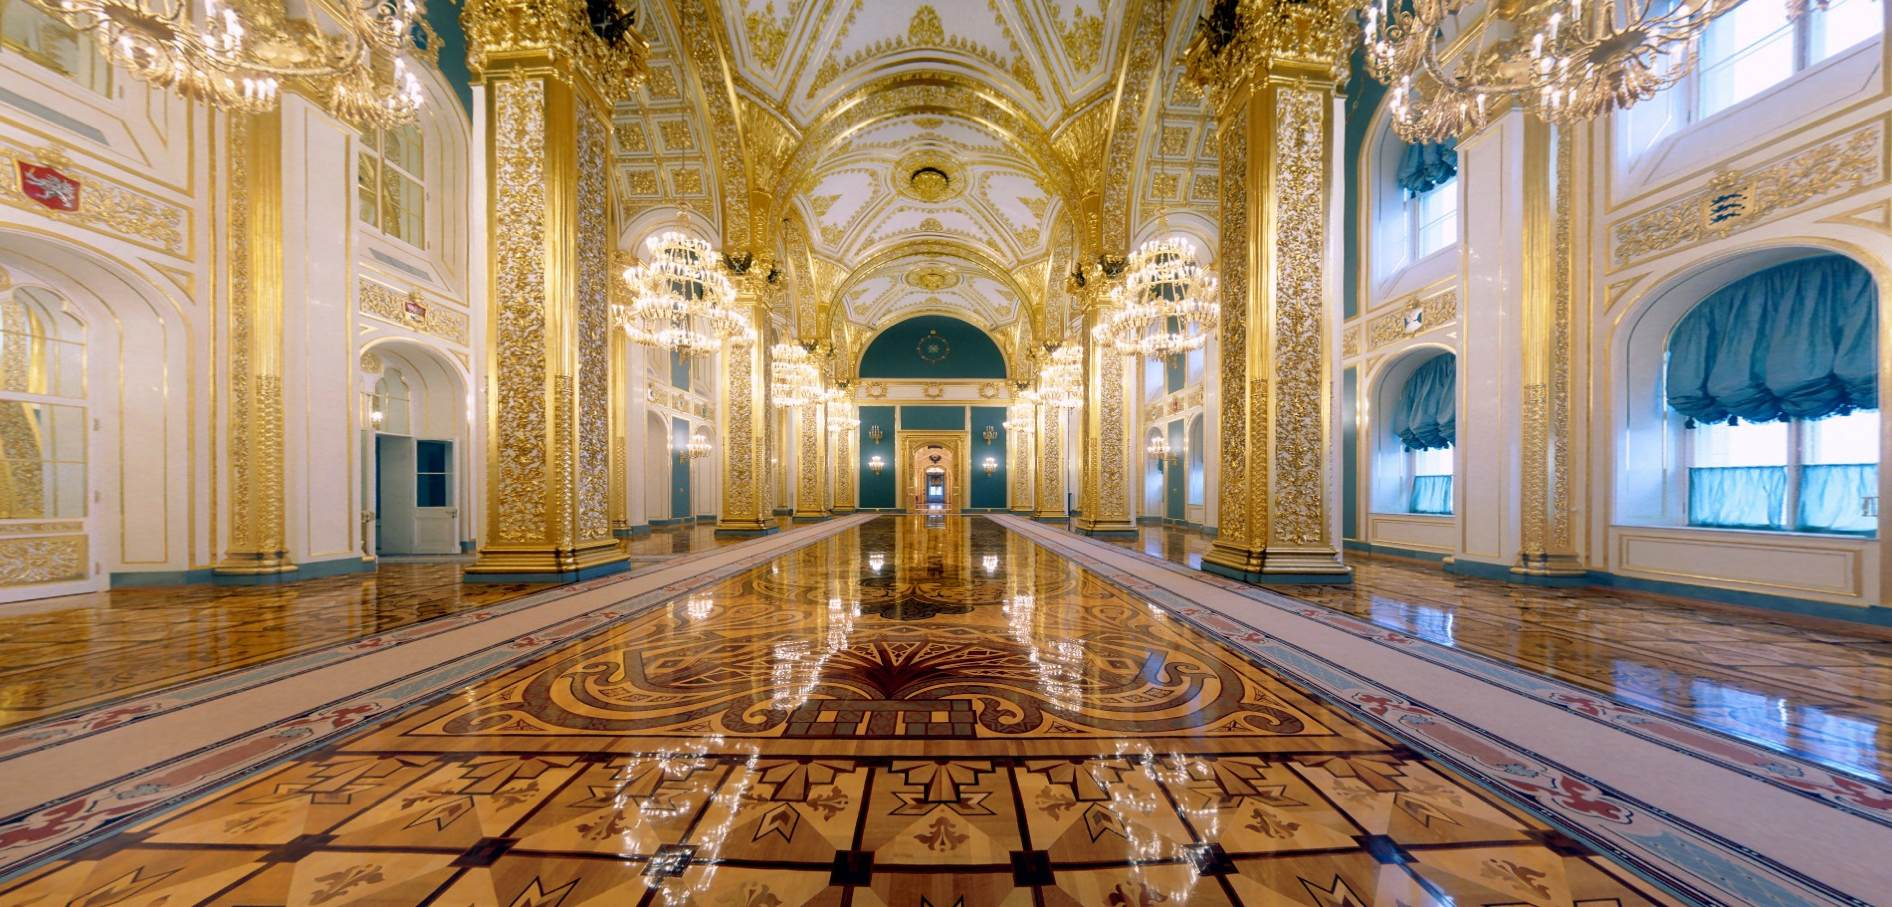 kremlin_in_moscow_alexander_palace_13